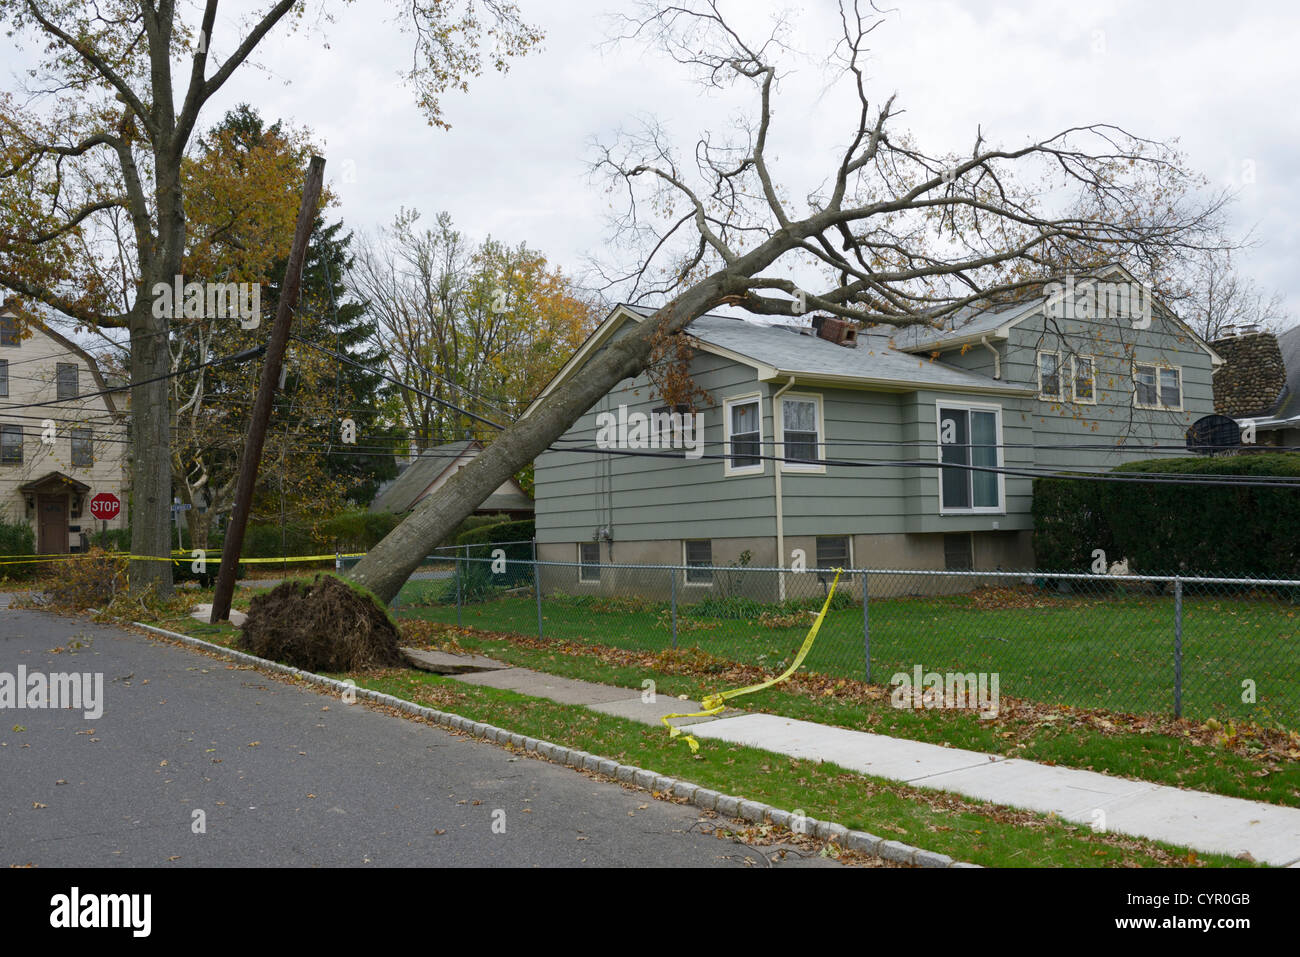 Destruction to houses, trees and power lines caused by Hurricane Sandy, northern New Jersey - Stock Image